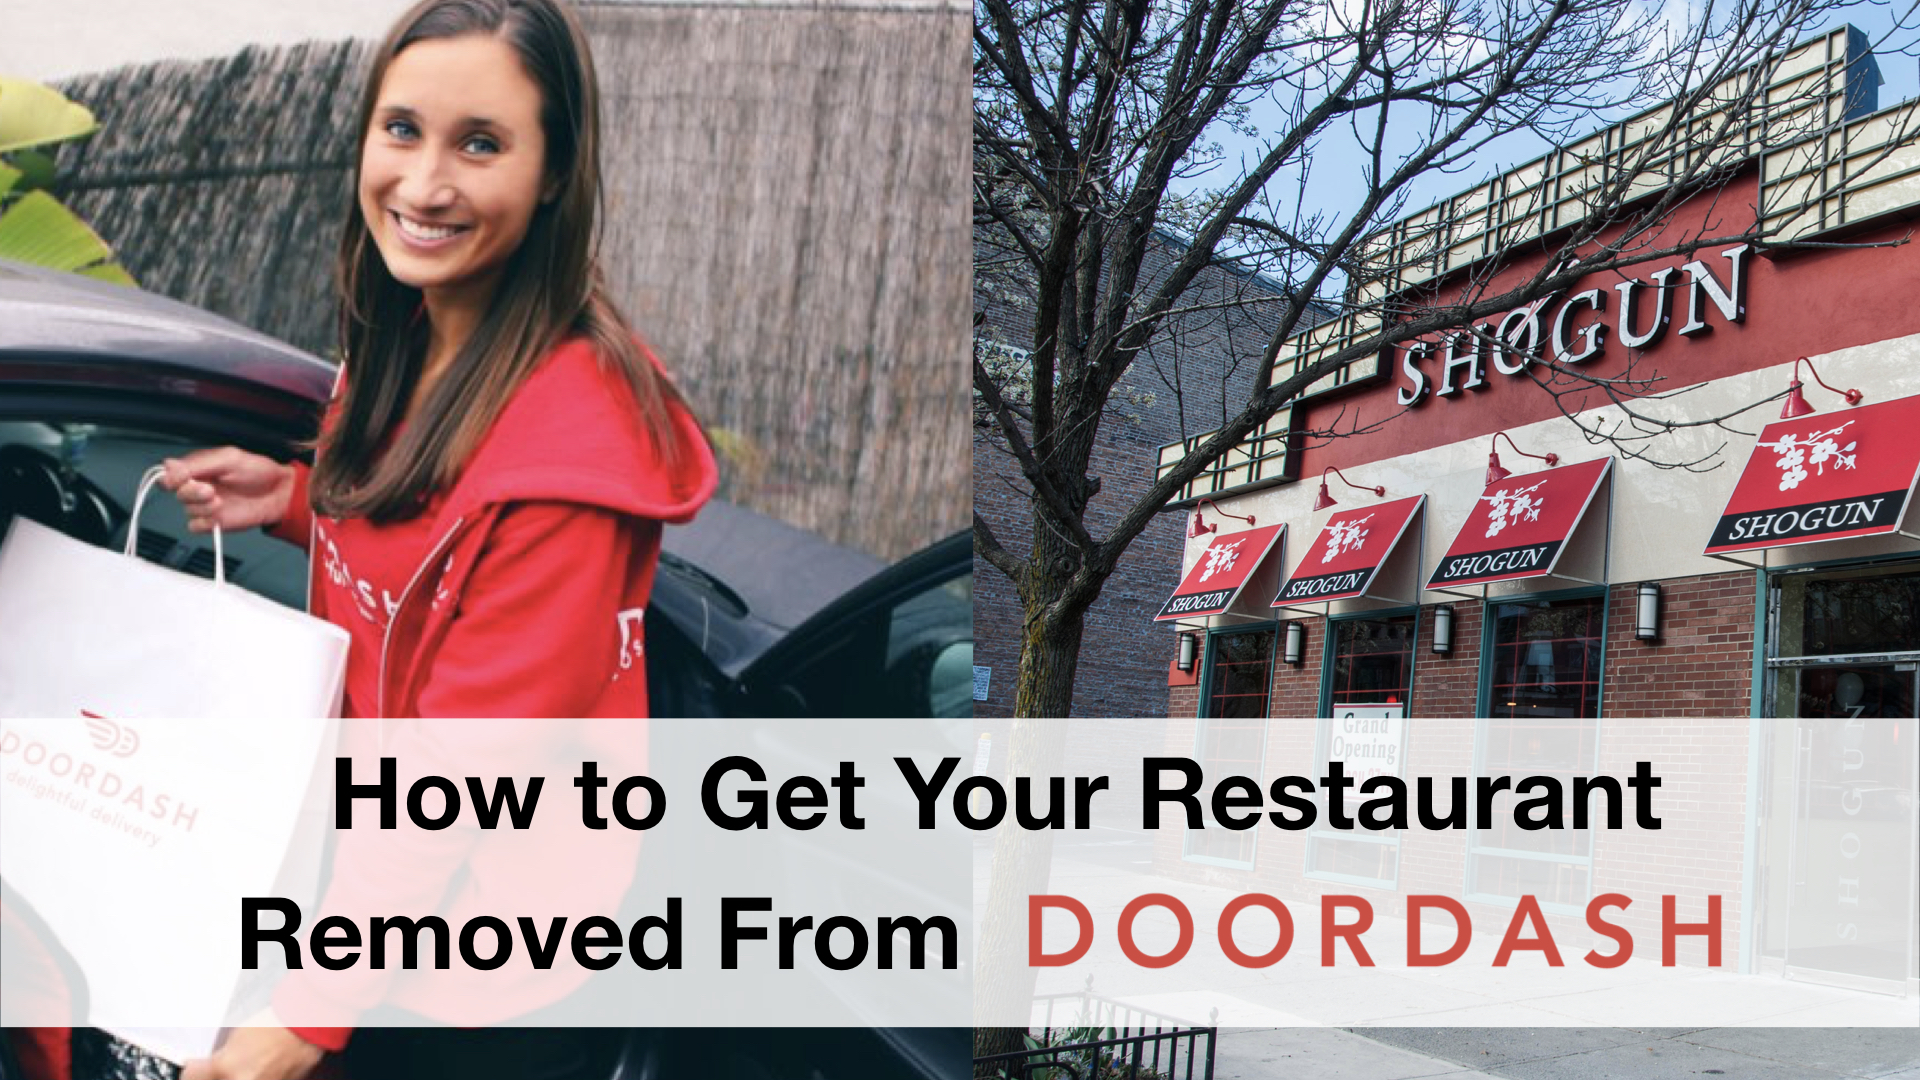 How to Get Your Restaurant Removed From DoorDash